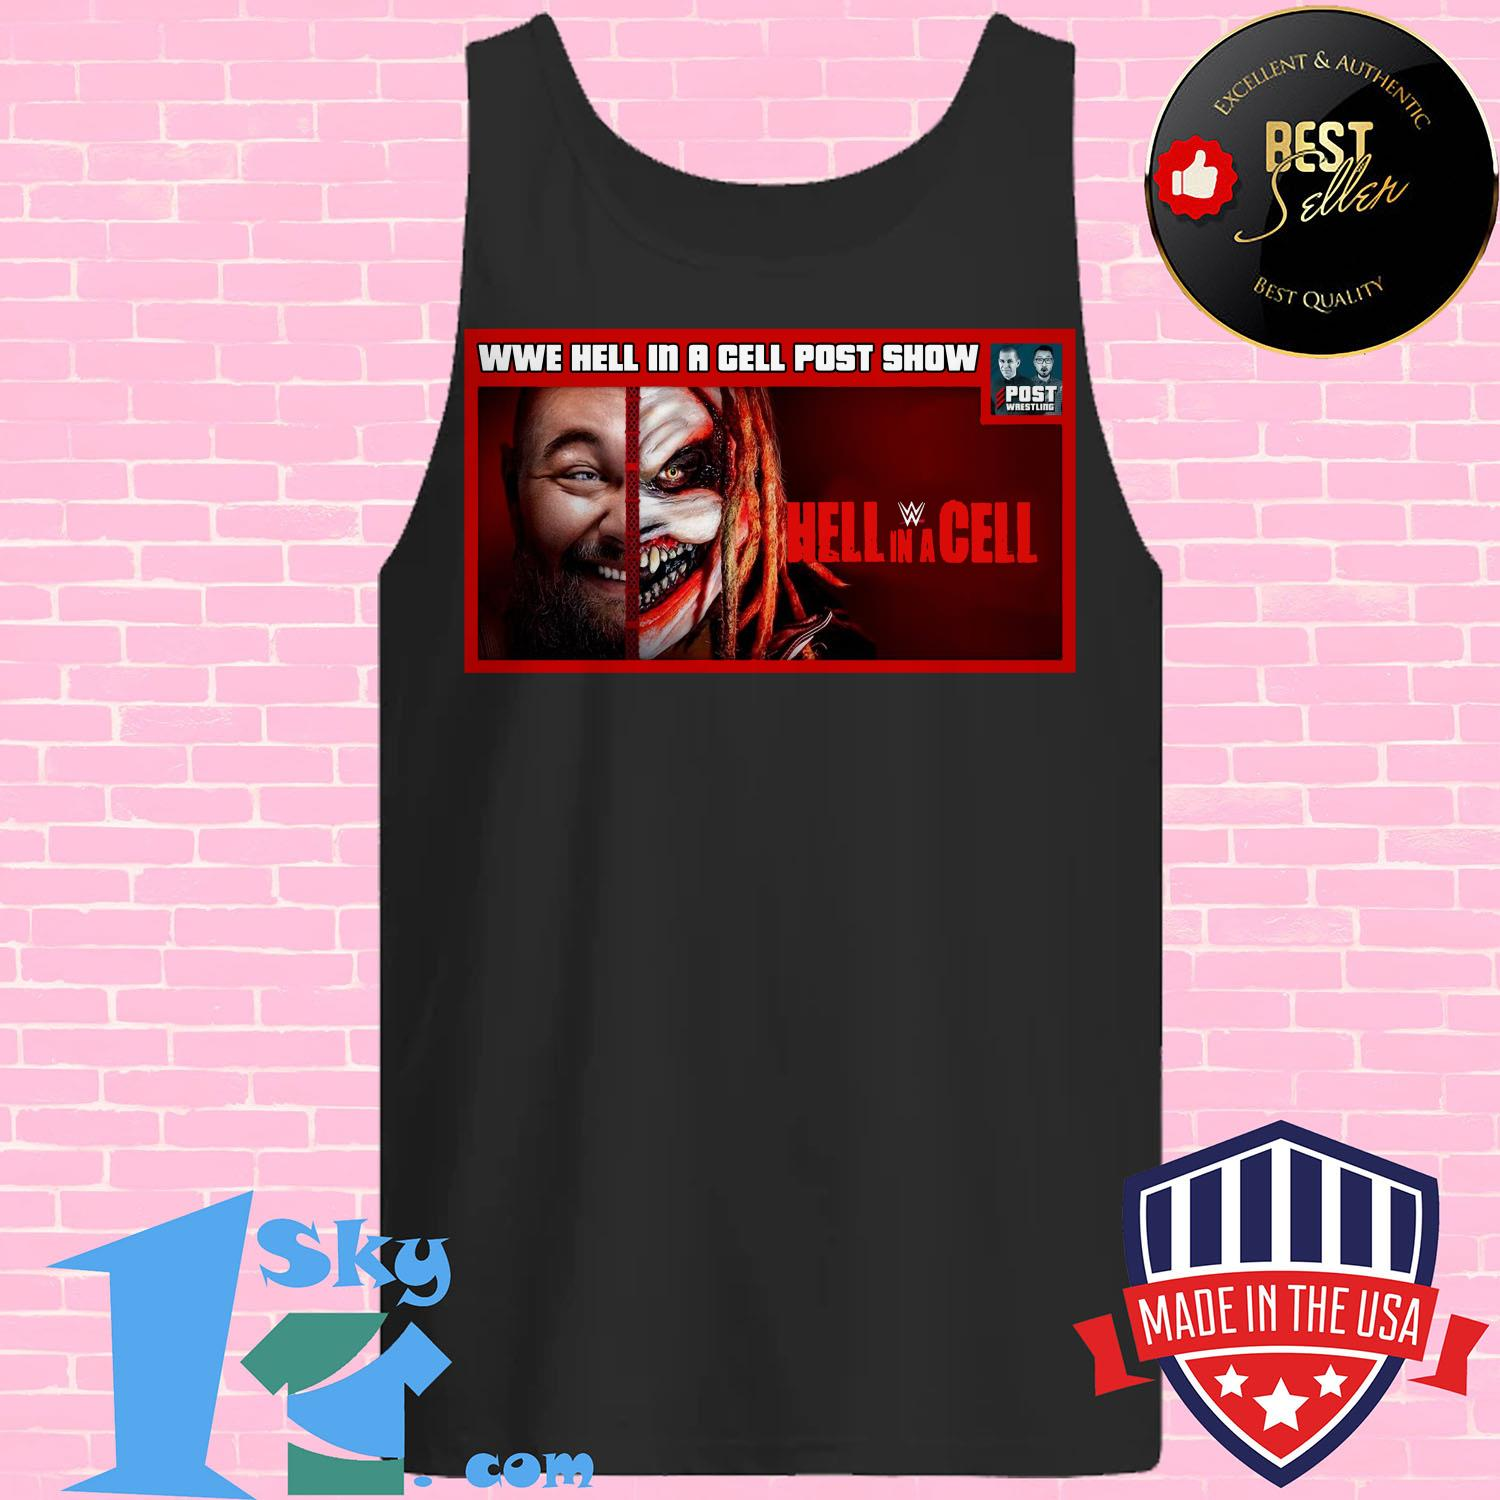 wwe hell in a cell post show hell in a cell tank top 1 - Wwe Hell In A Cell Post Show Hell In A Cell Shirt